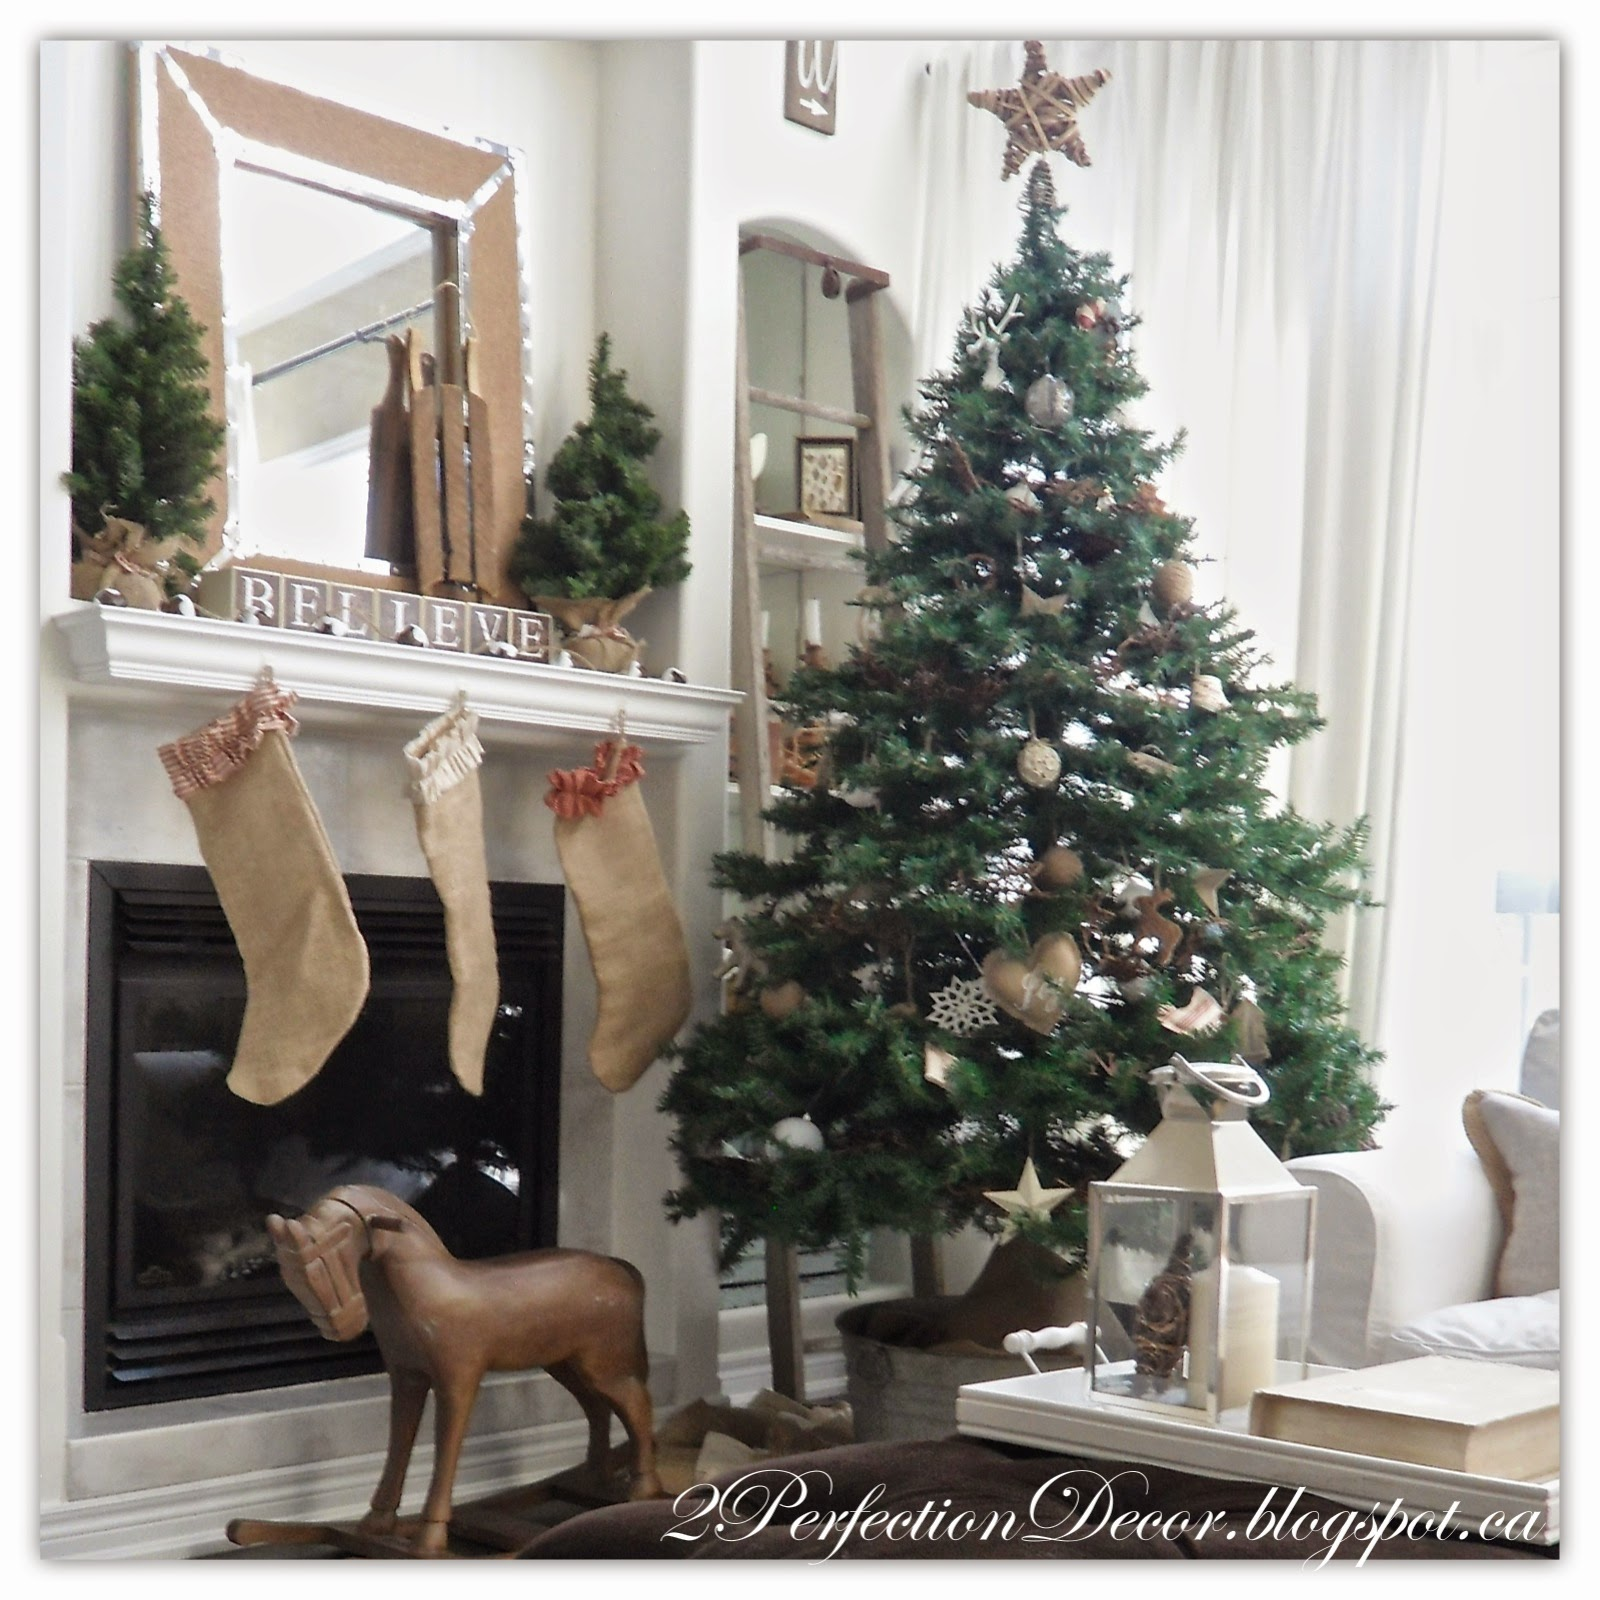 2 Perfection Decor- Jute Ribbon Christmas Tree-Treasure Hunt Thursday- From My Front Porch To Yours